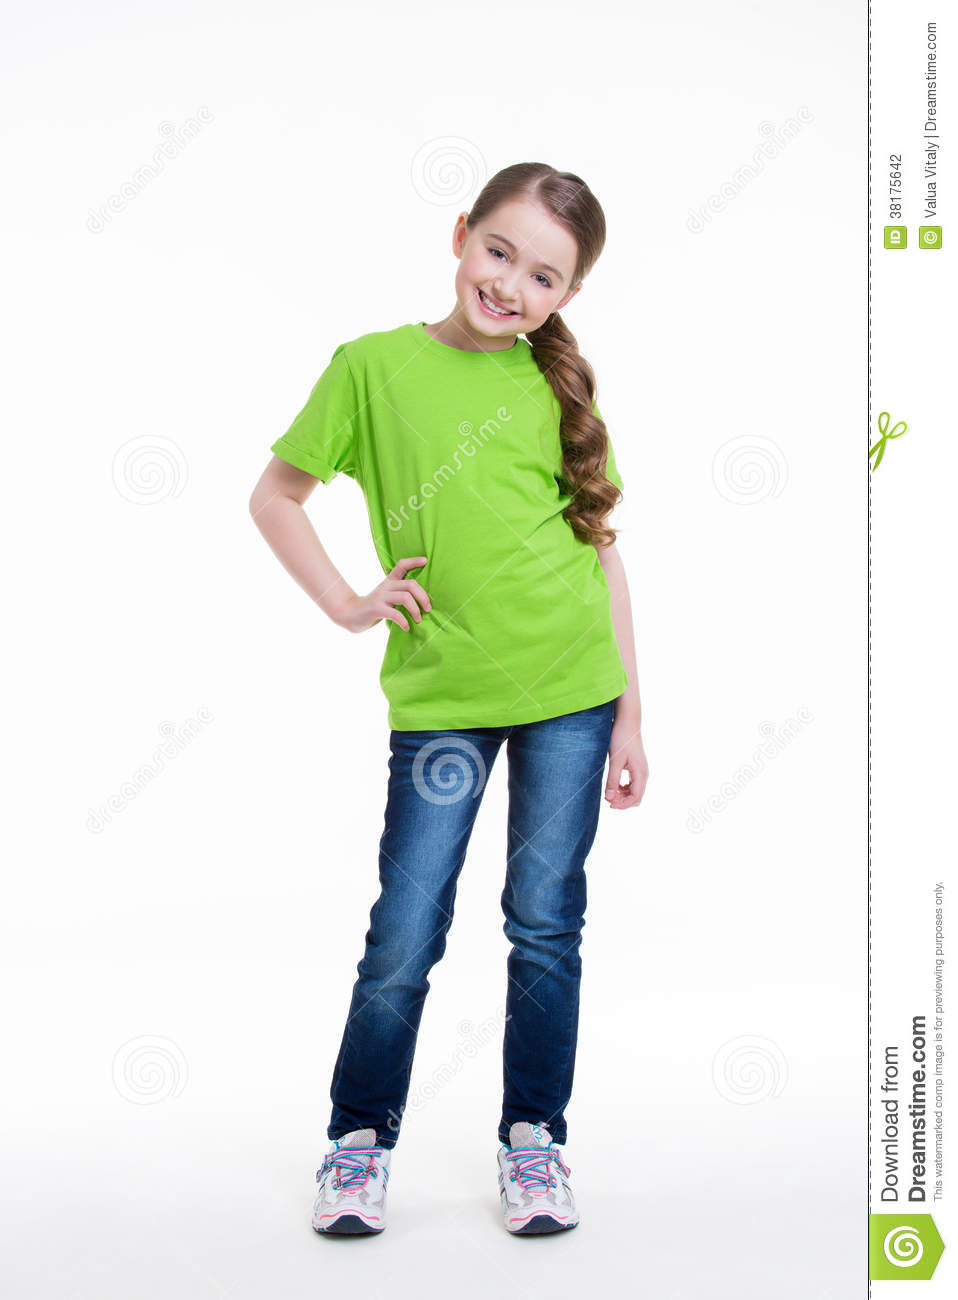 Portrait of a smiling little girl in a green shirt and blue jeans on a ...